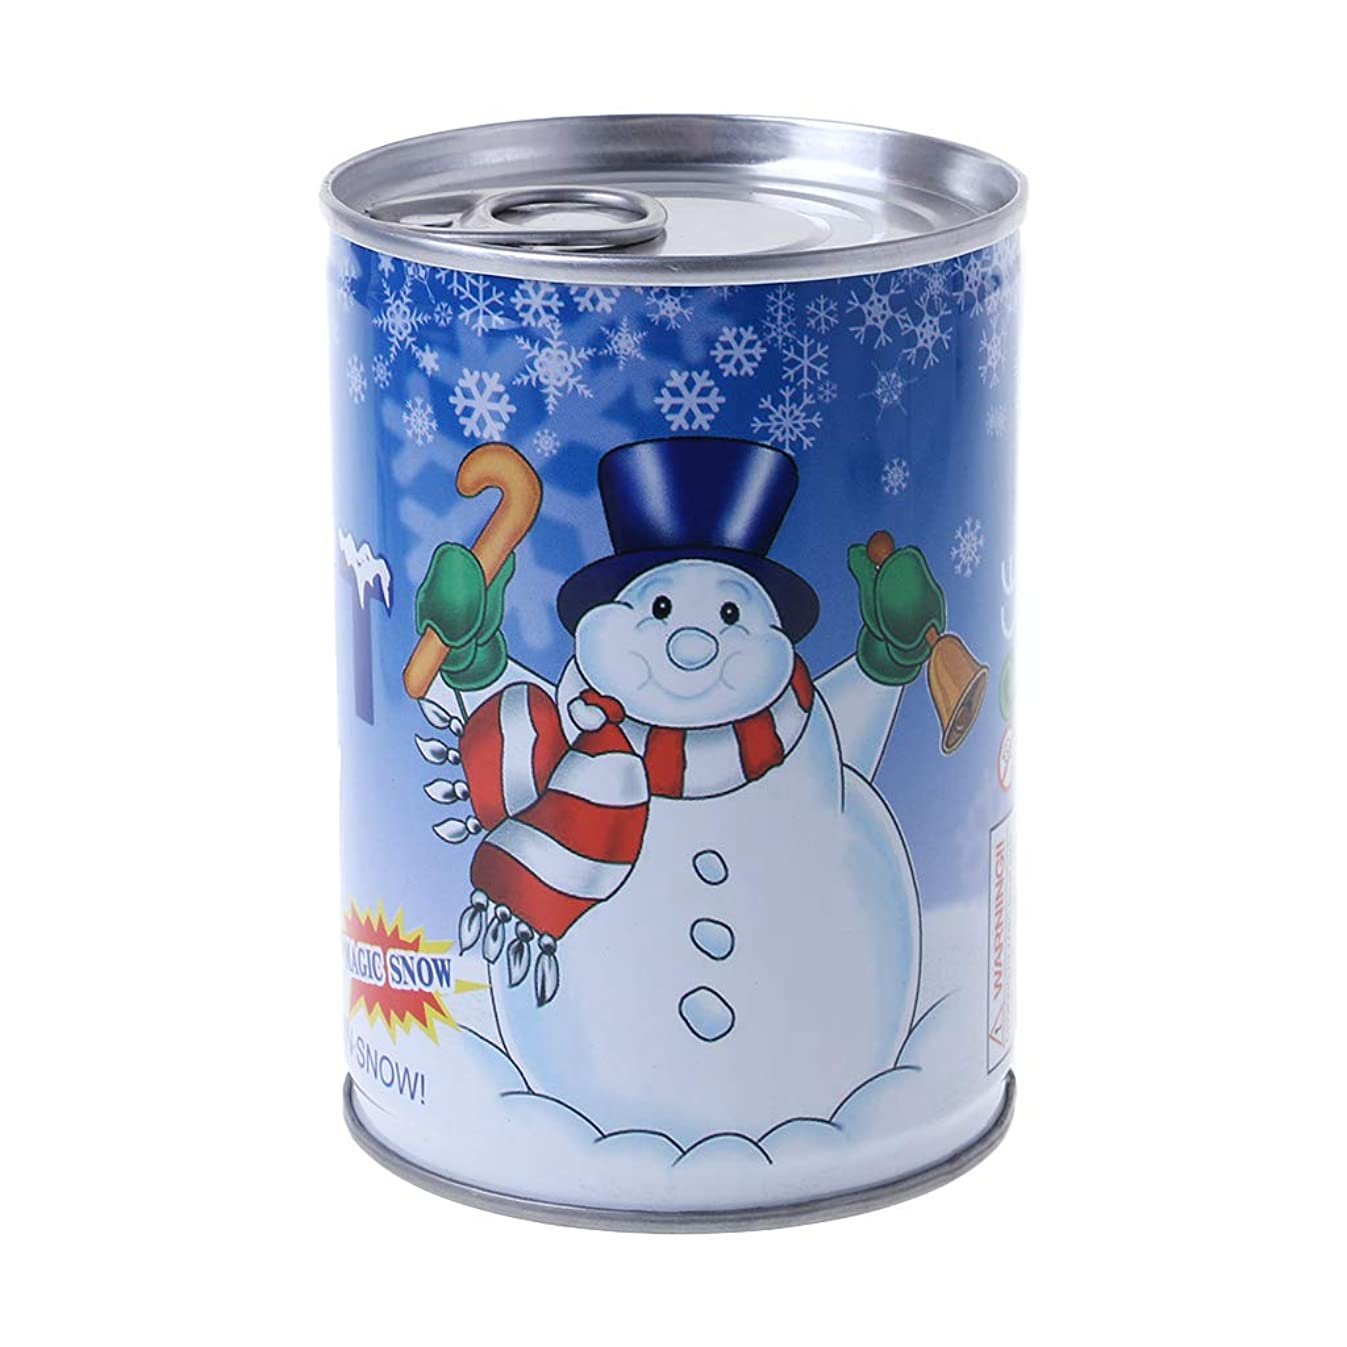 RingBuu 2018 Christmas Latest, Instant Fluffy Man-Made Magic Artificial Snow Cans Christmas Decoration DIY Gift